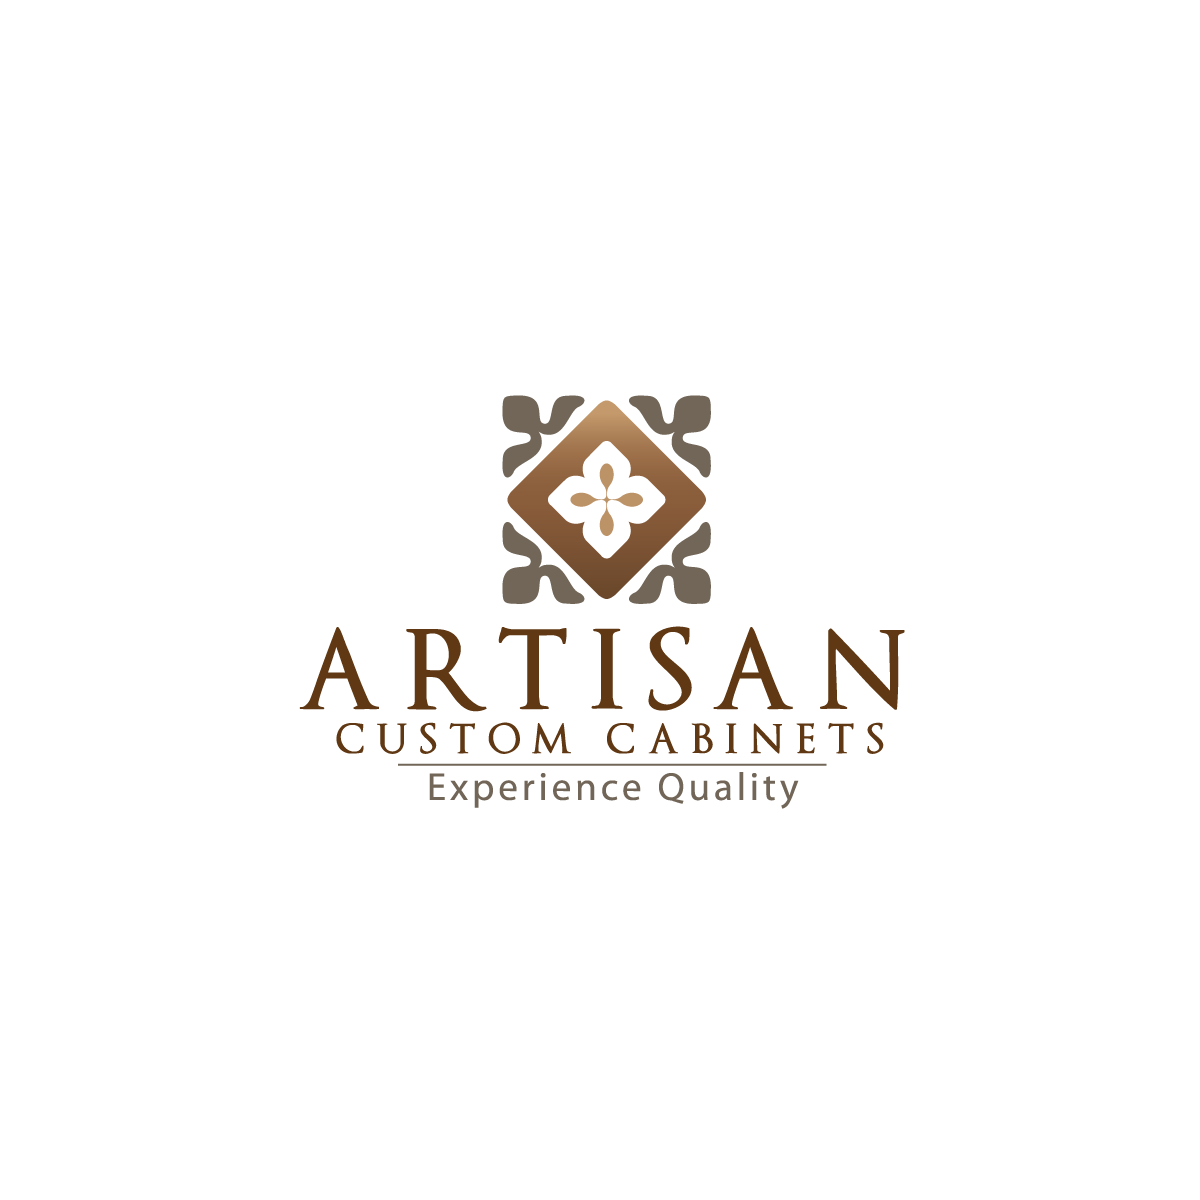 kitchen cabinet logo creative logo design for artisan custom cabinets 19105